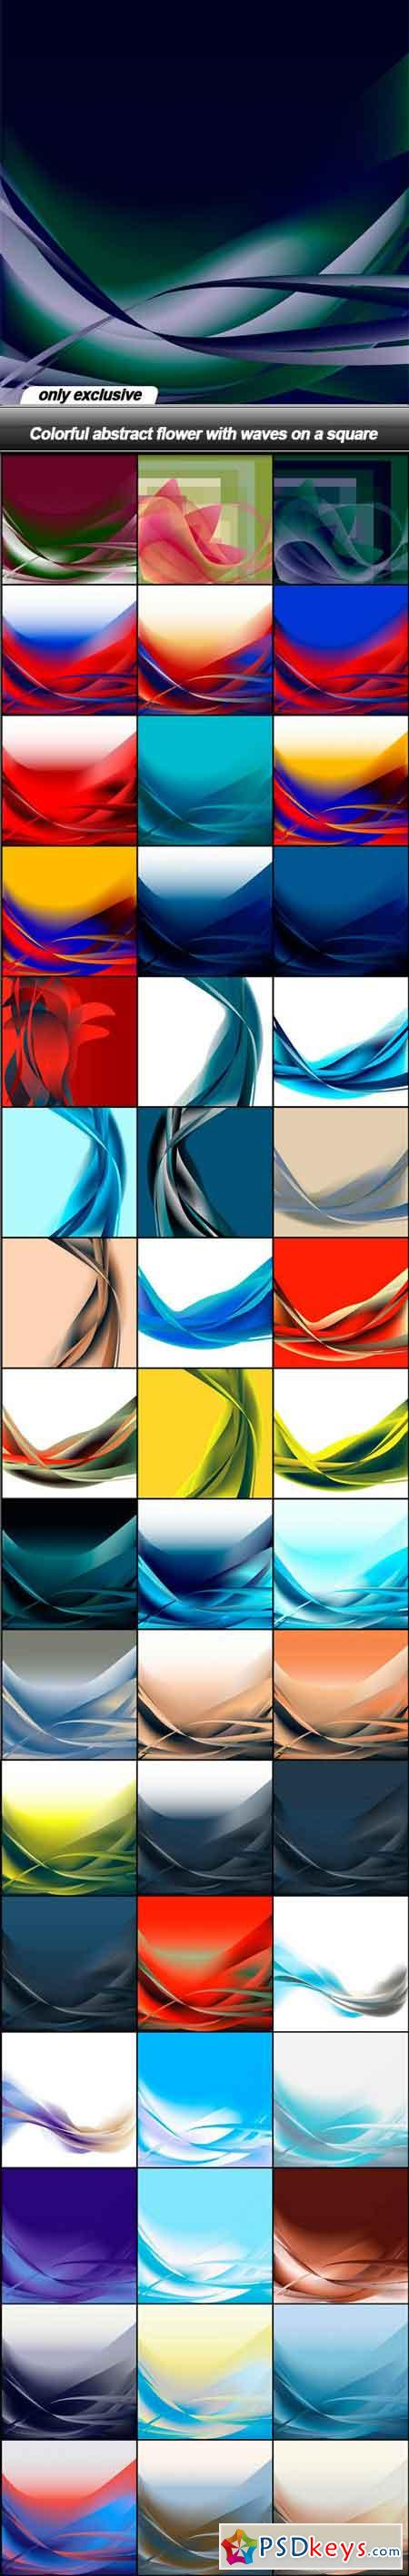 Colorful abstract flower with waves on a square - 49 EPS